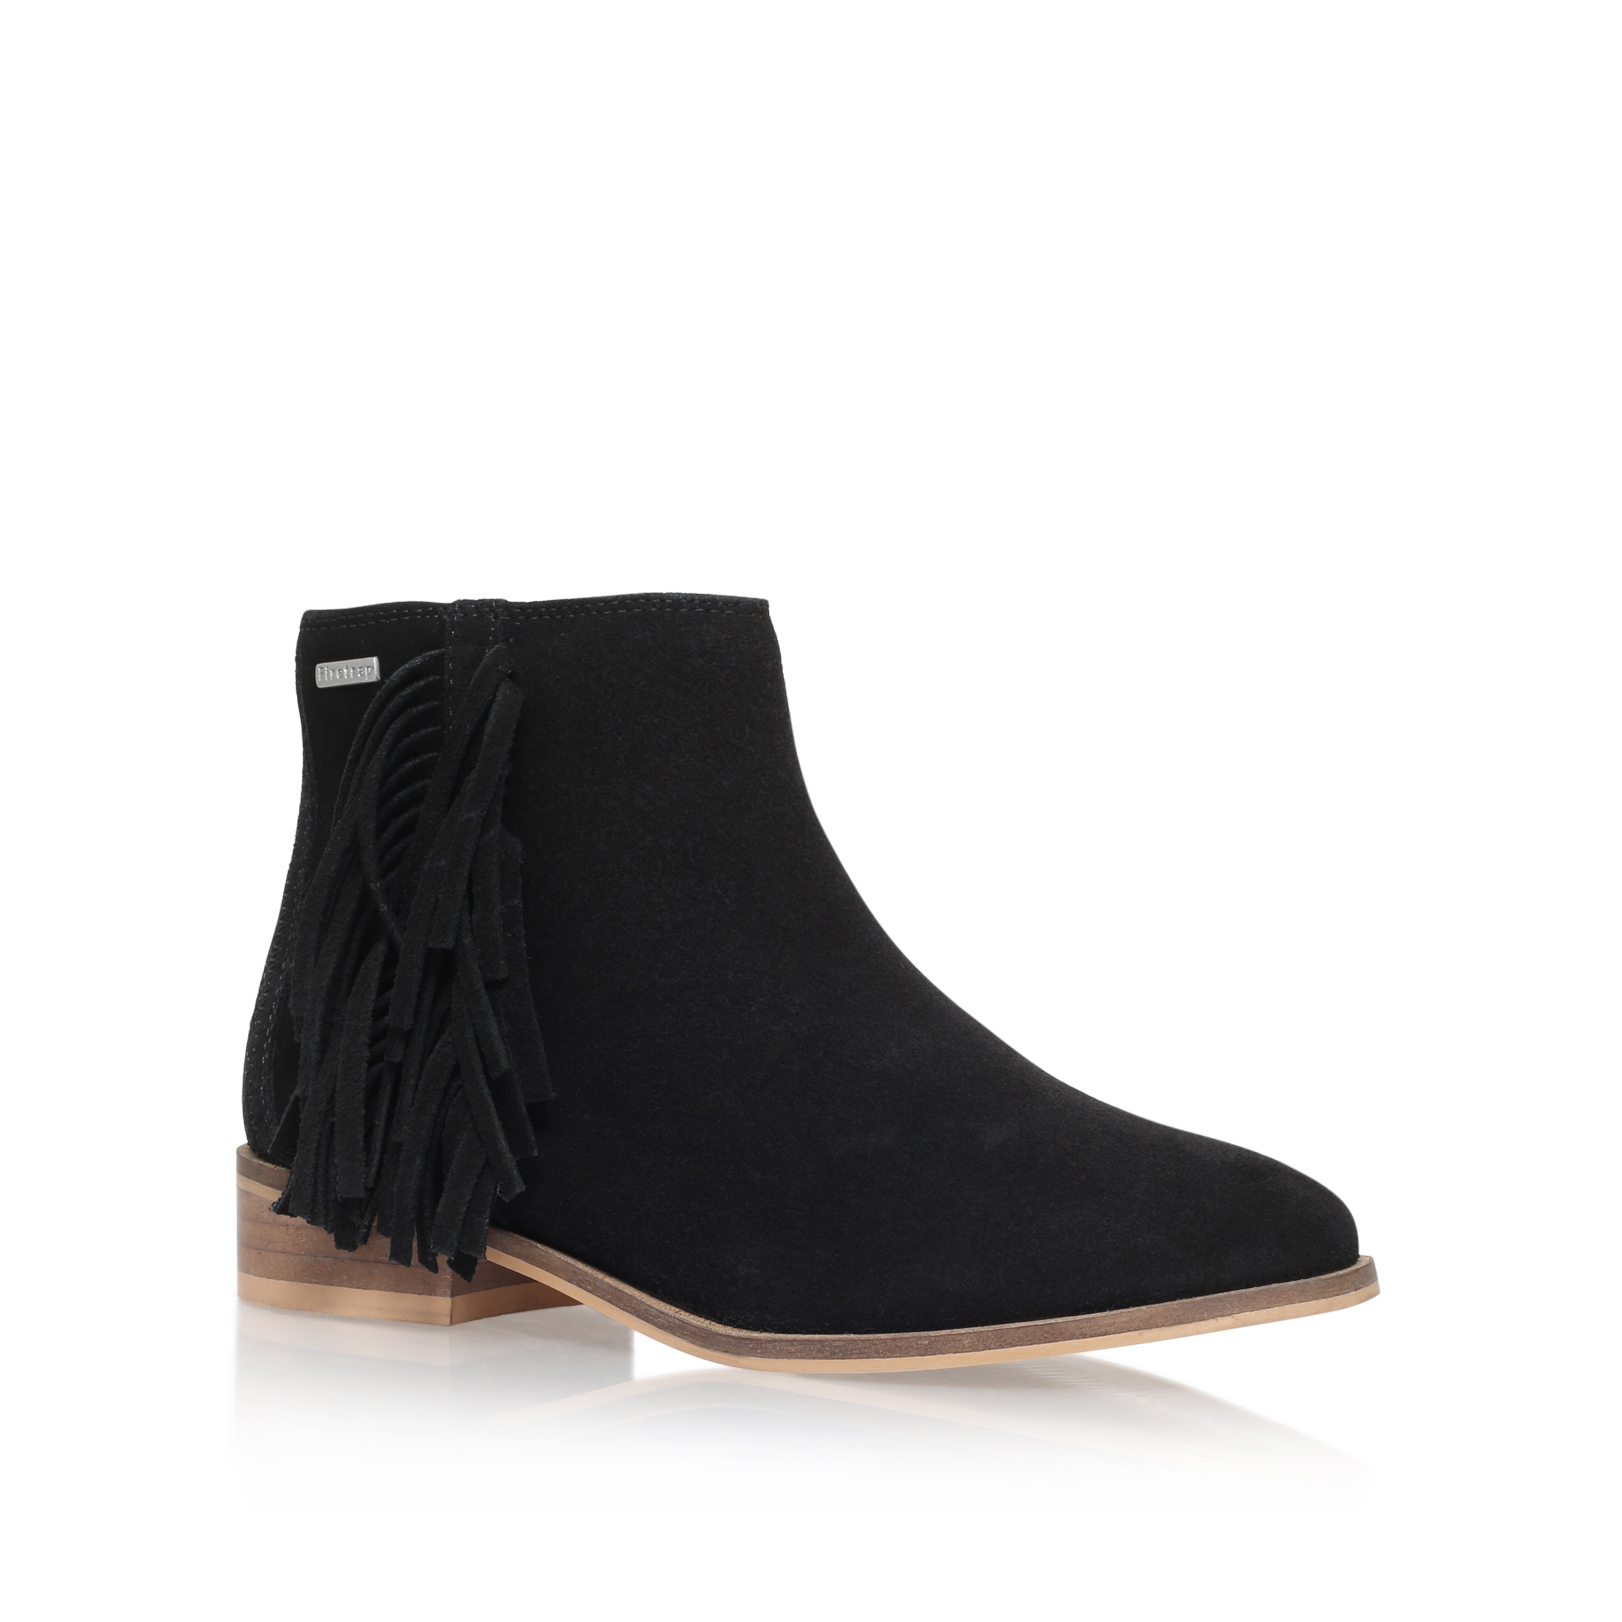 SUEDE TASSLE ANKLE BOOT